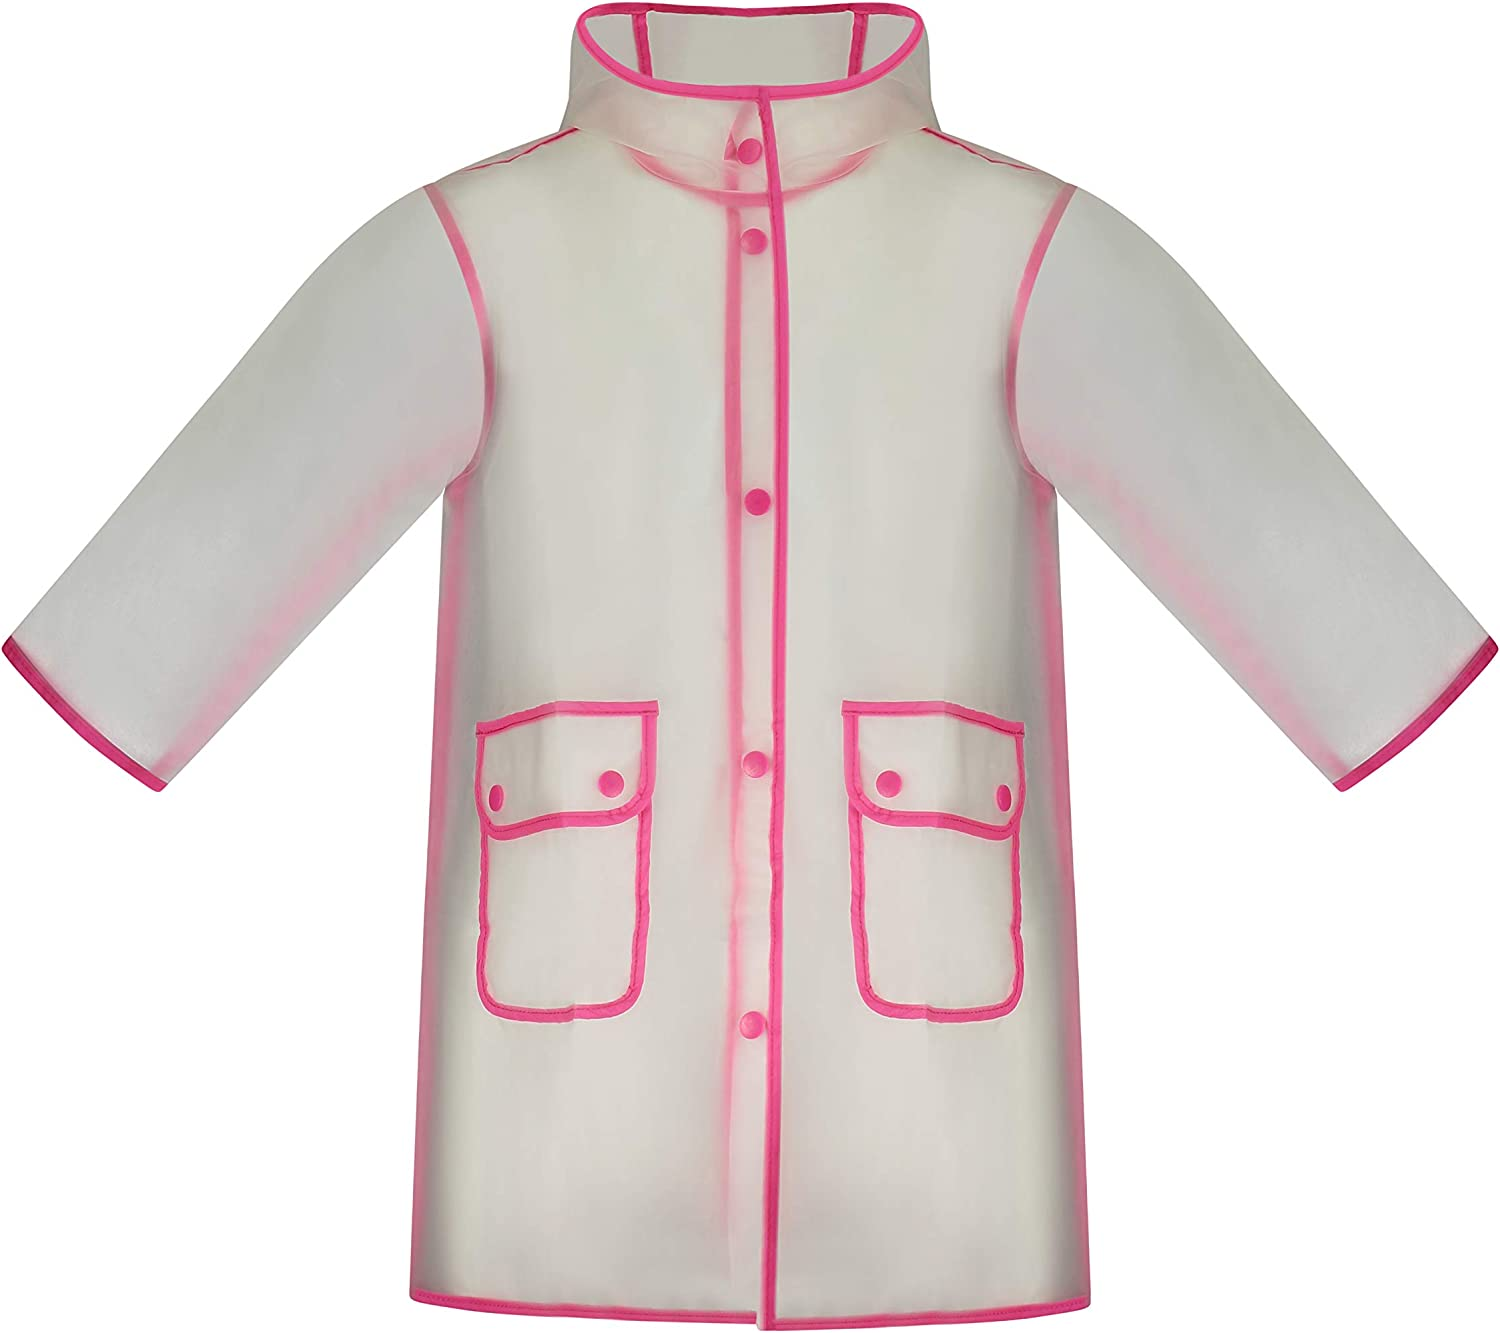 Fit Rite Kids Raincoat Girls Frosted Transparent Full Length Rain Jacket with Reflective Piping